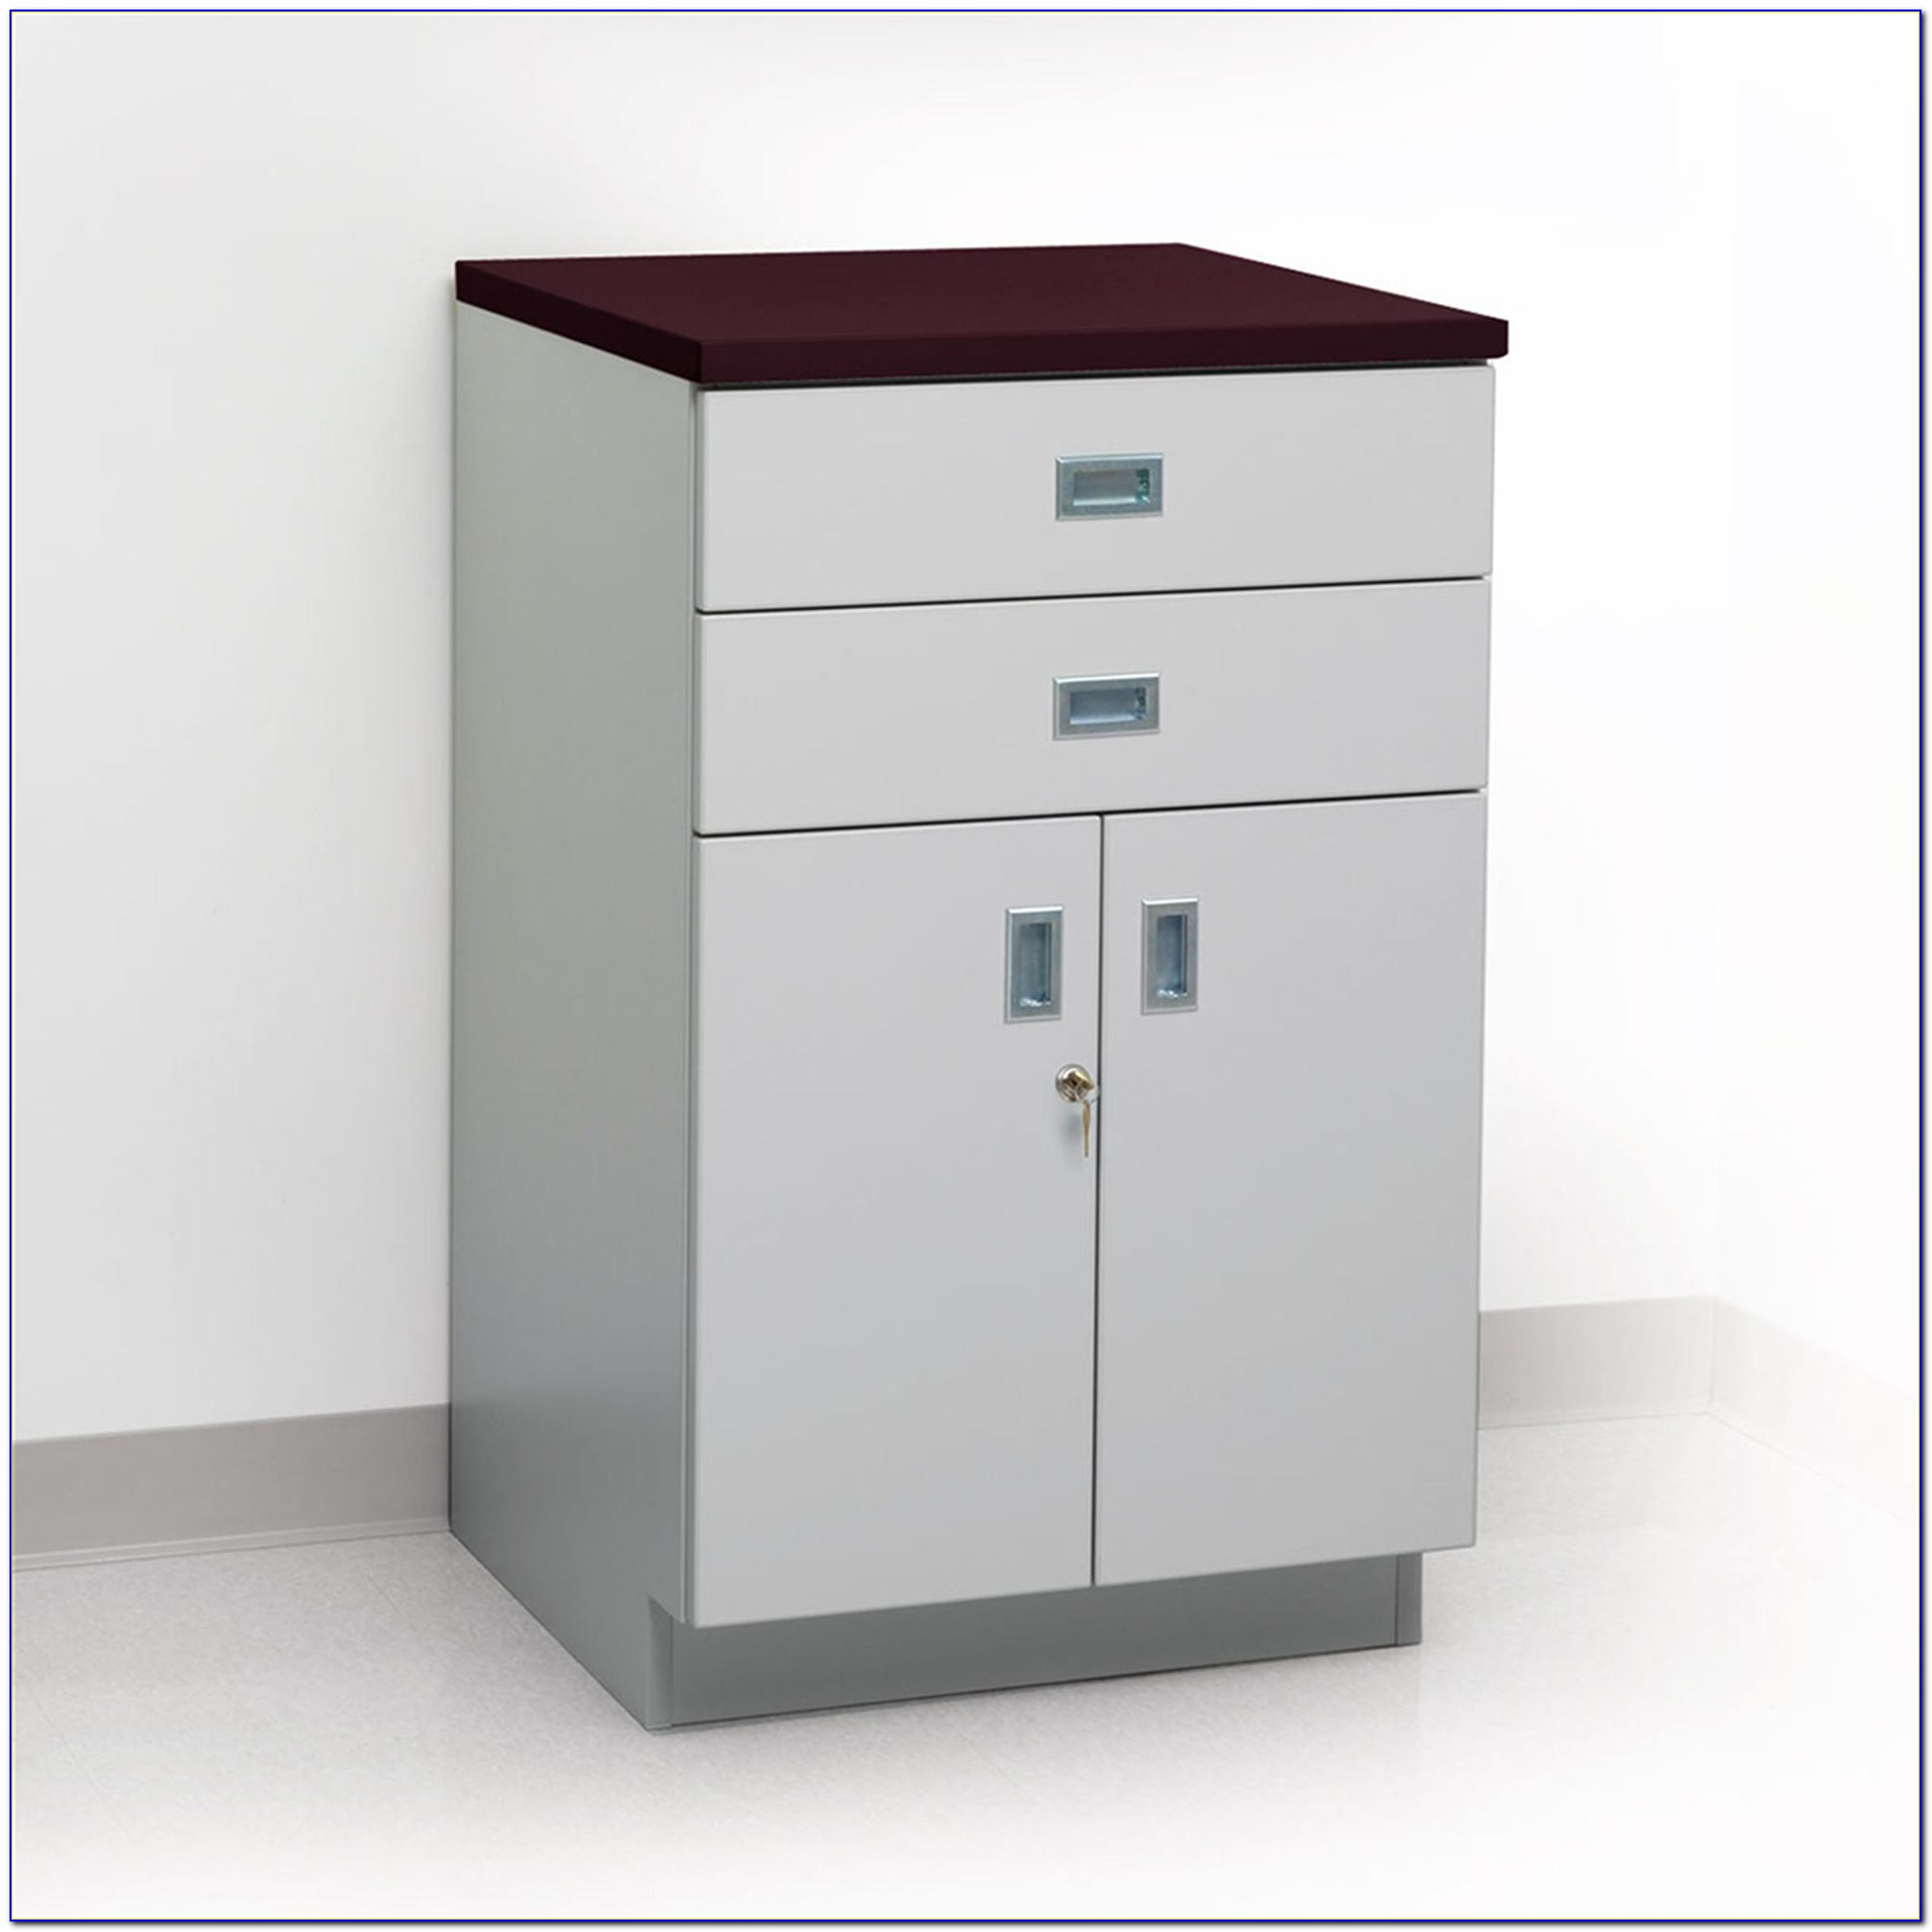 Floor Cabinet With Drawers And Shelves